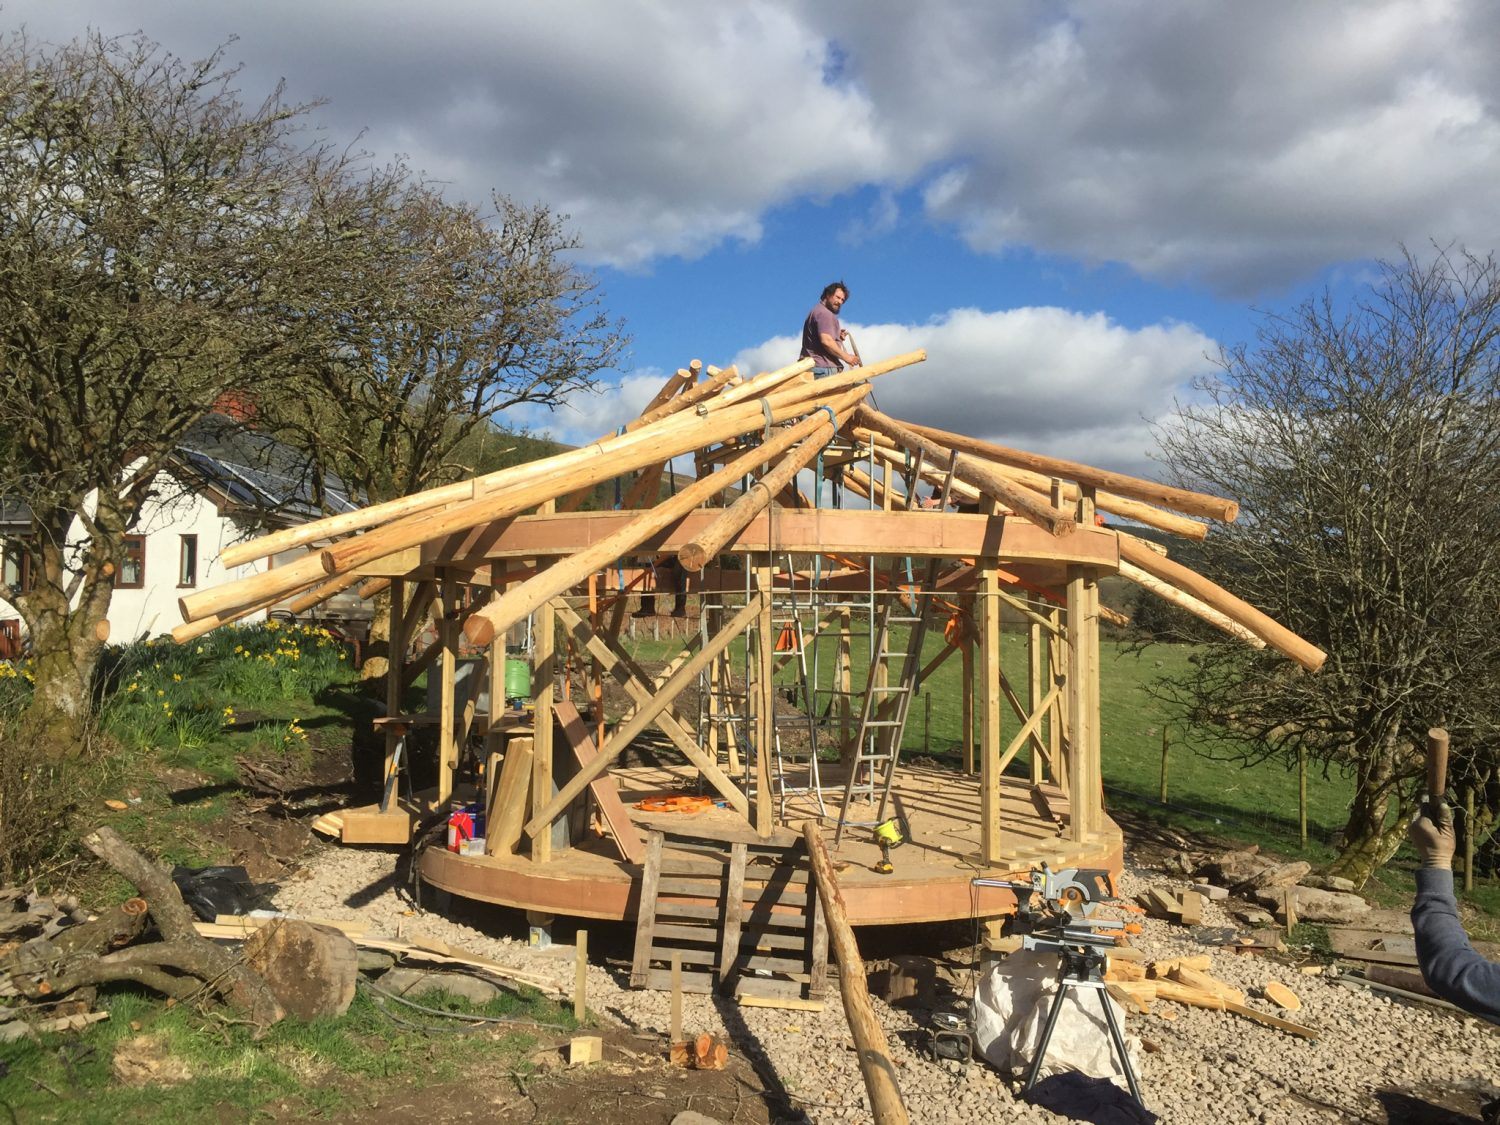 Ty Mam Mawr straw bale roundhouse in skeleton form with the reciprocal frame roof about half completed